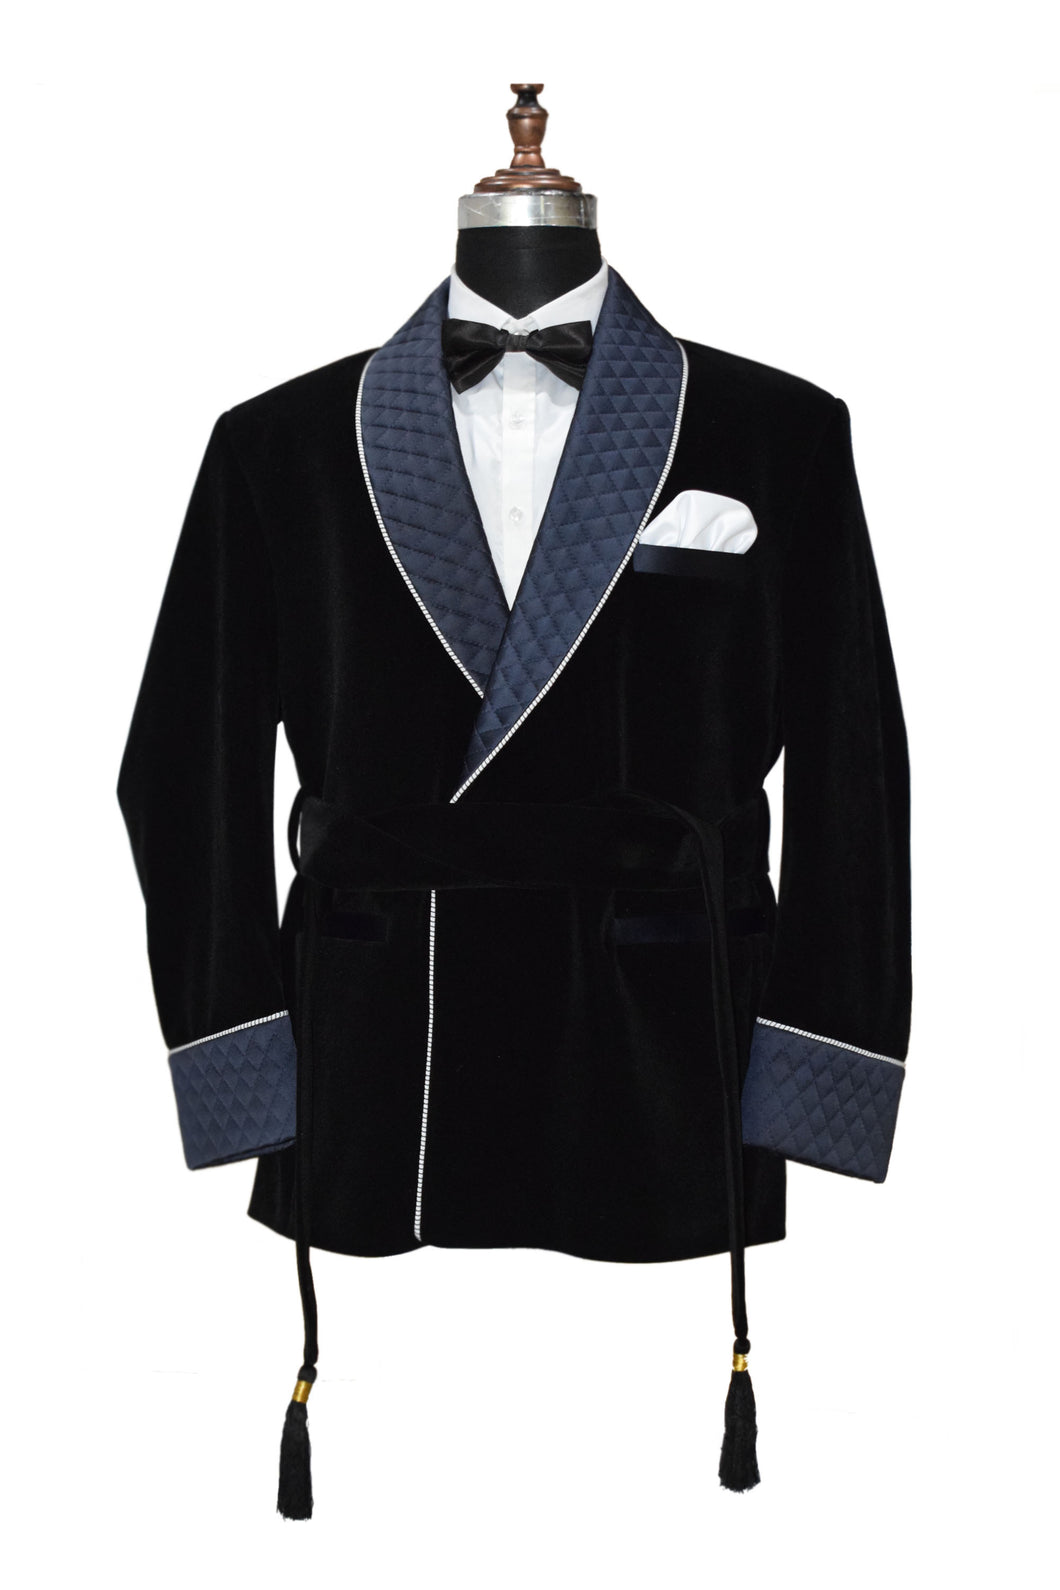 Men Black Smoking Jacket Designer Party Wear Coats